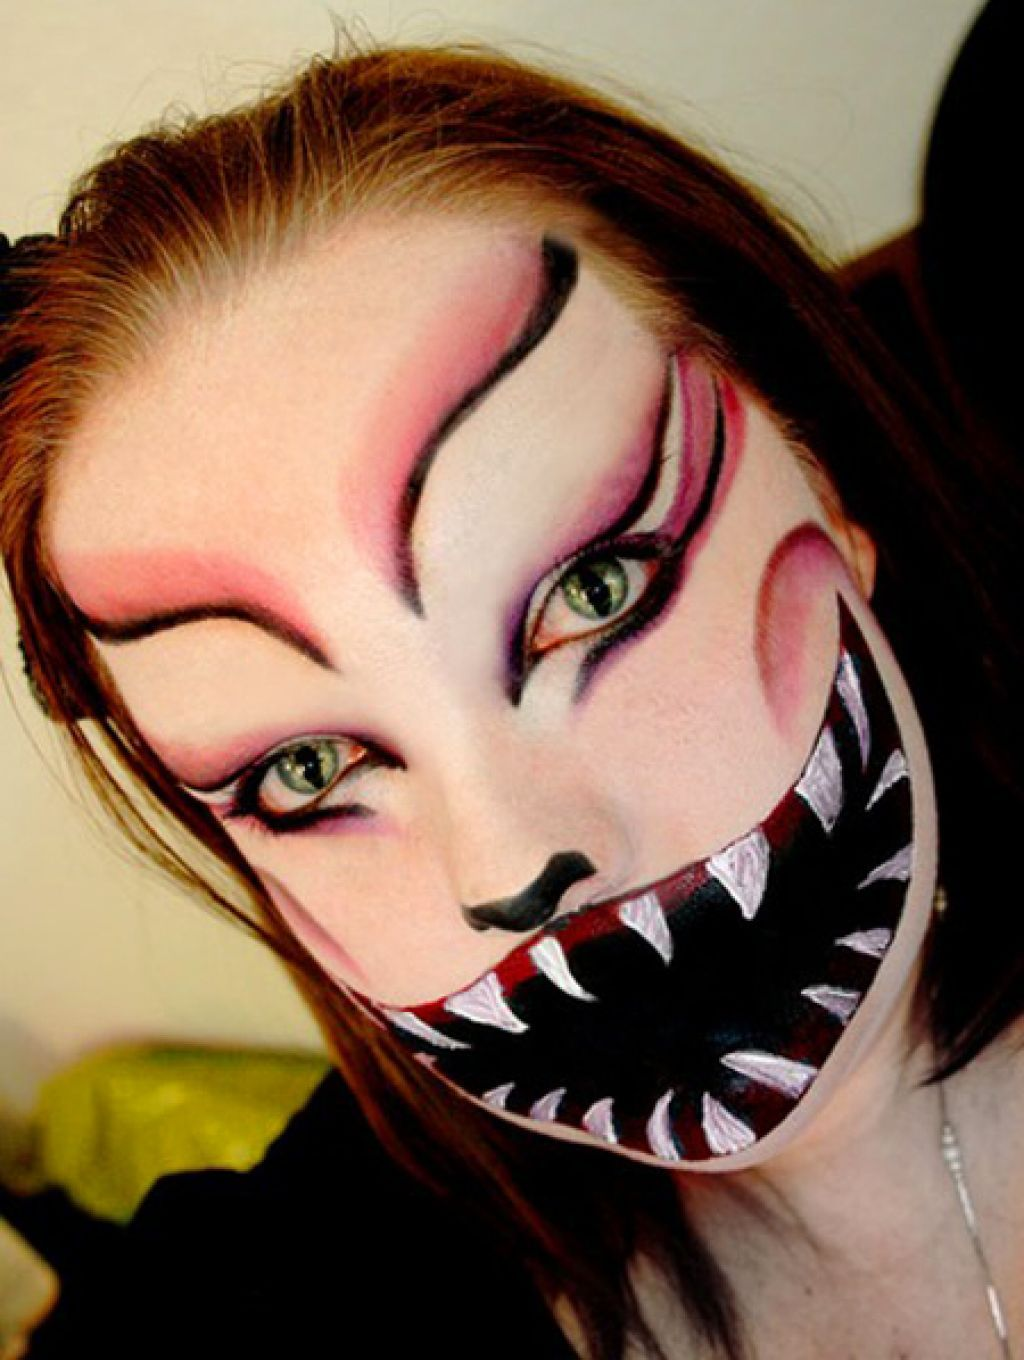 images of halloween face picture painting women 3d best tattoo design ideas - Female Halloween Face Painting